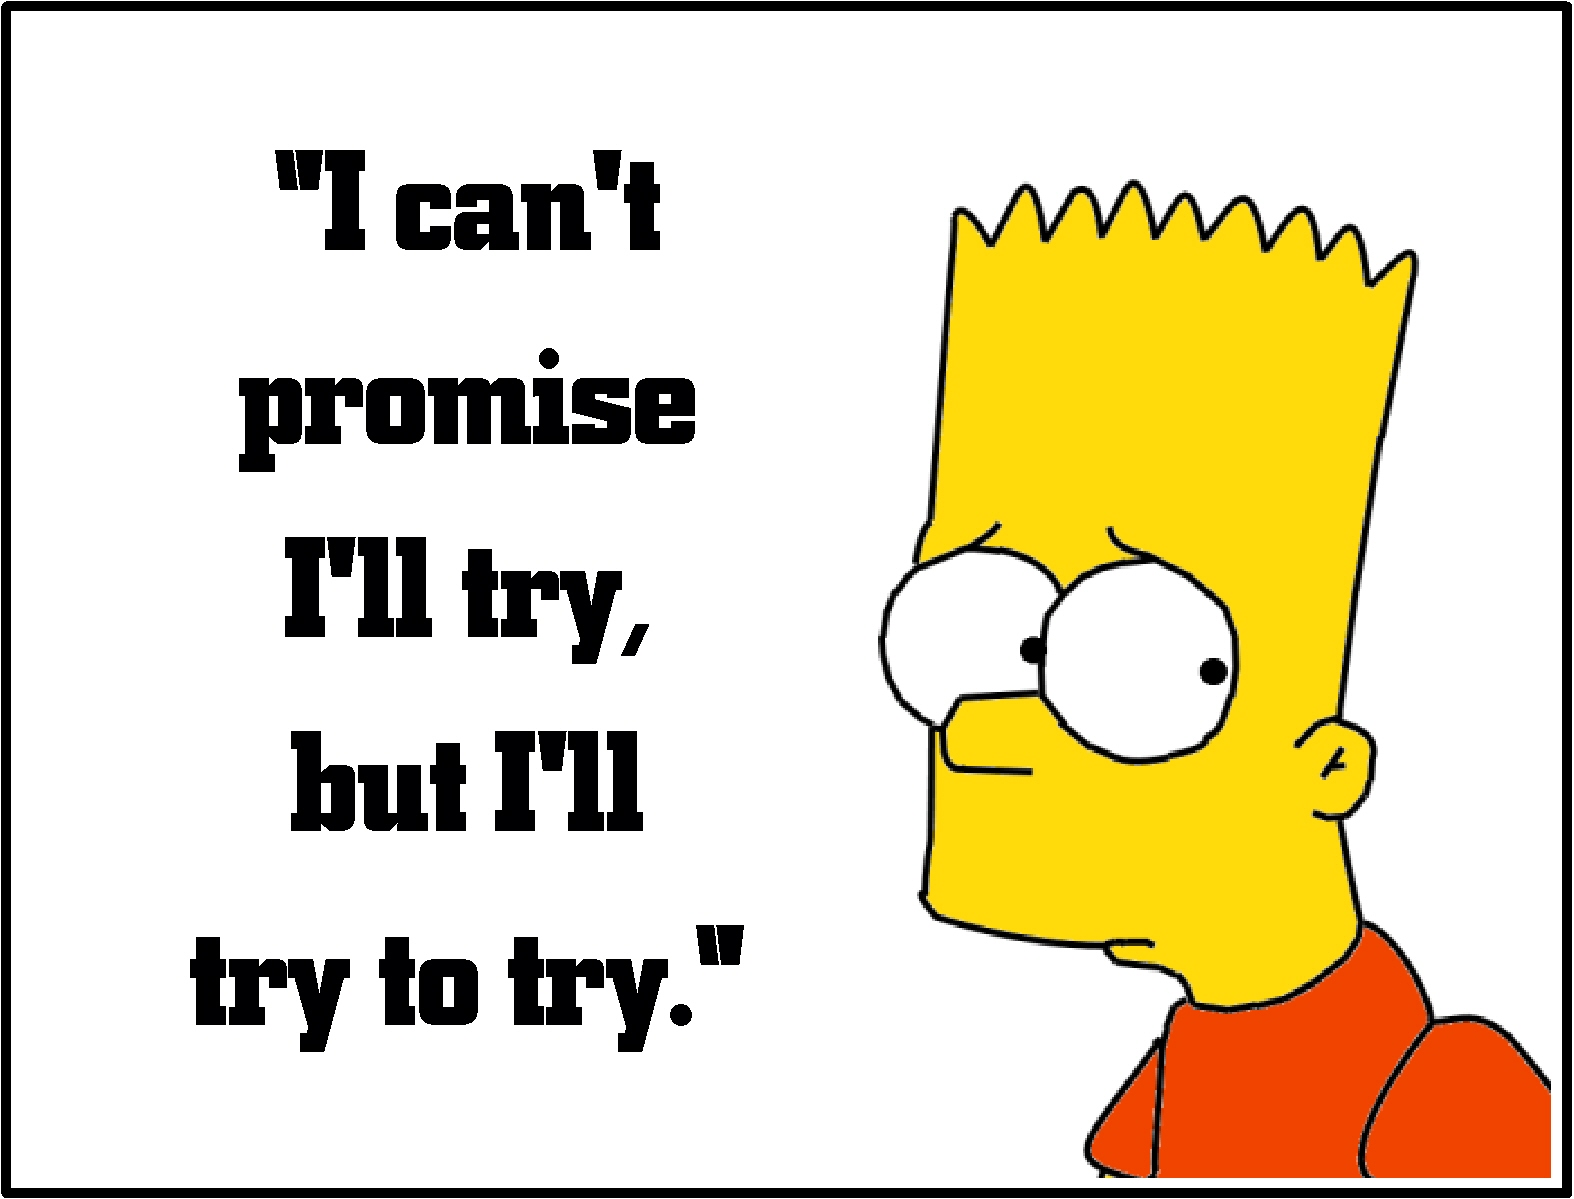 bart-simpson-try-to-try.jpg